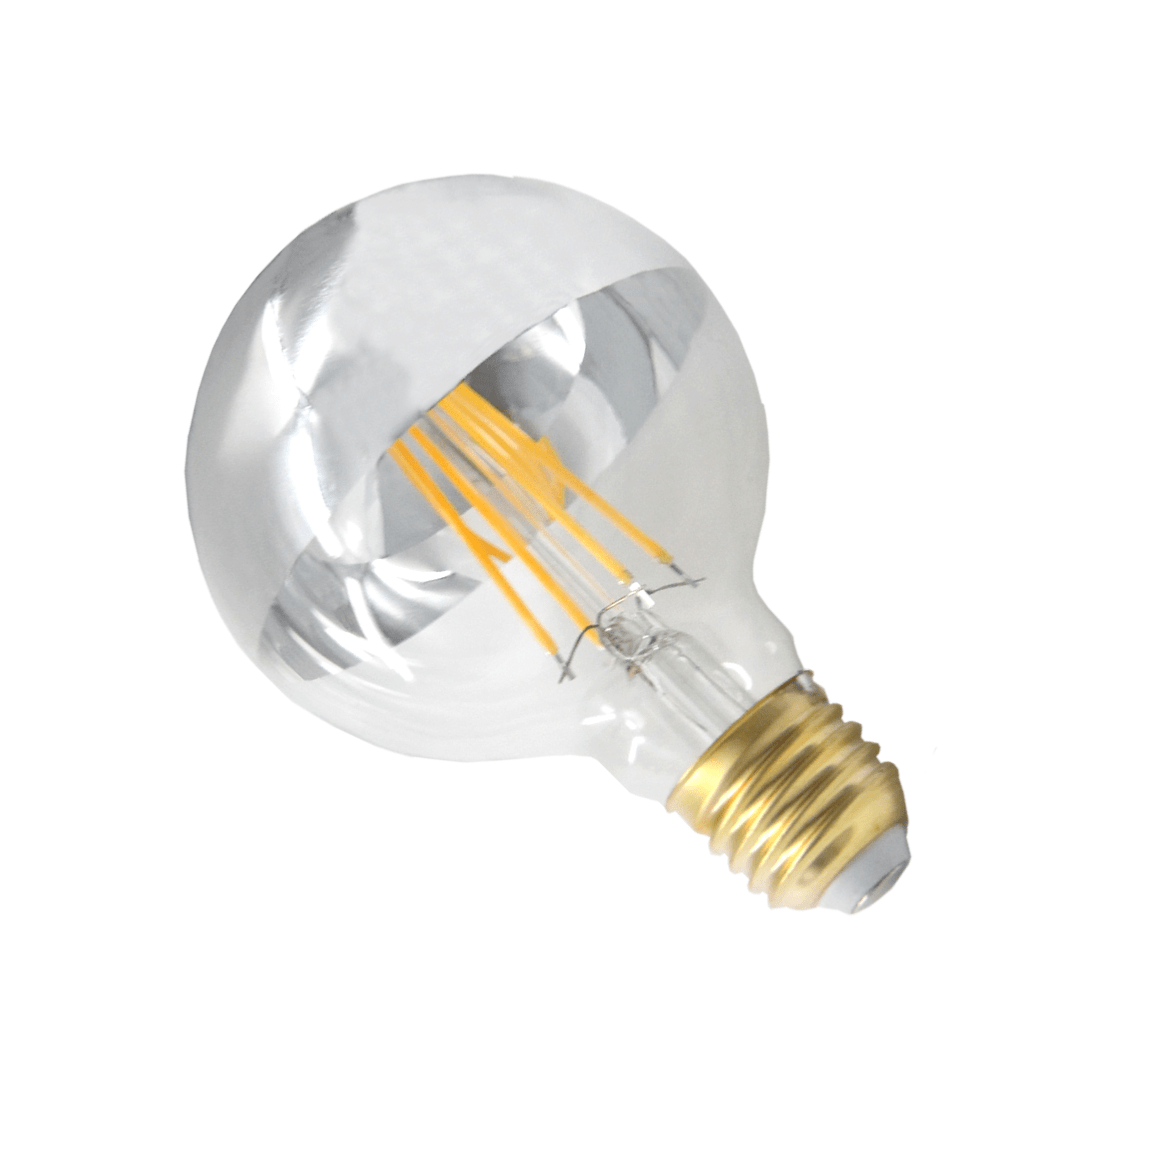 Ampoule E27 Dimmable Ampoule Led E27 Filament Dimmable 8w G95 Globe Reflect Argent